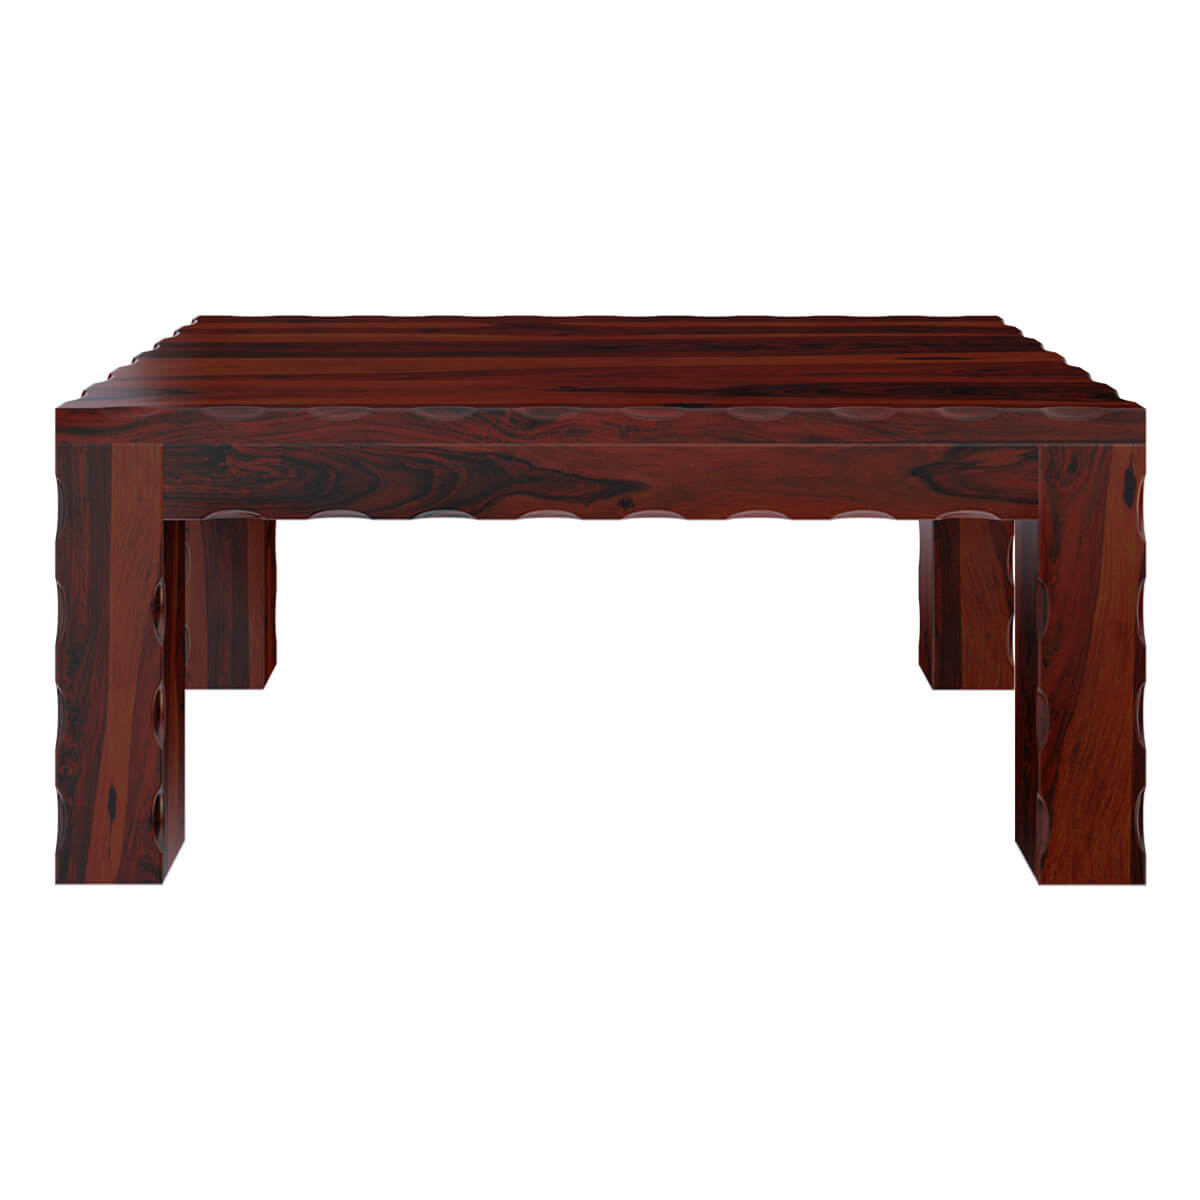 Unique rustic large cocktail wood coffee table for Large wooden coffee tables